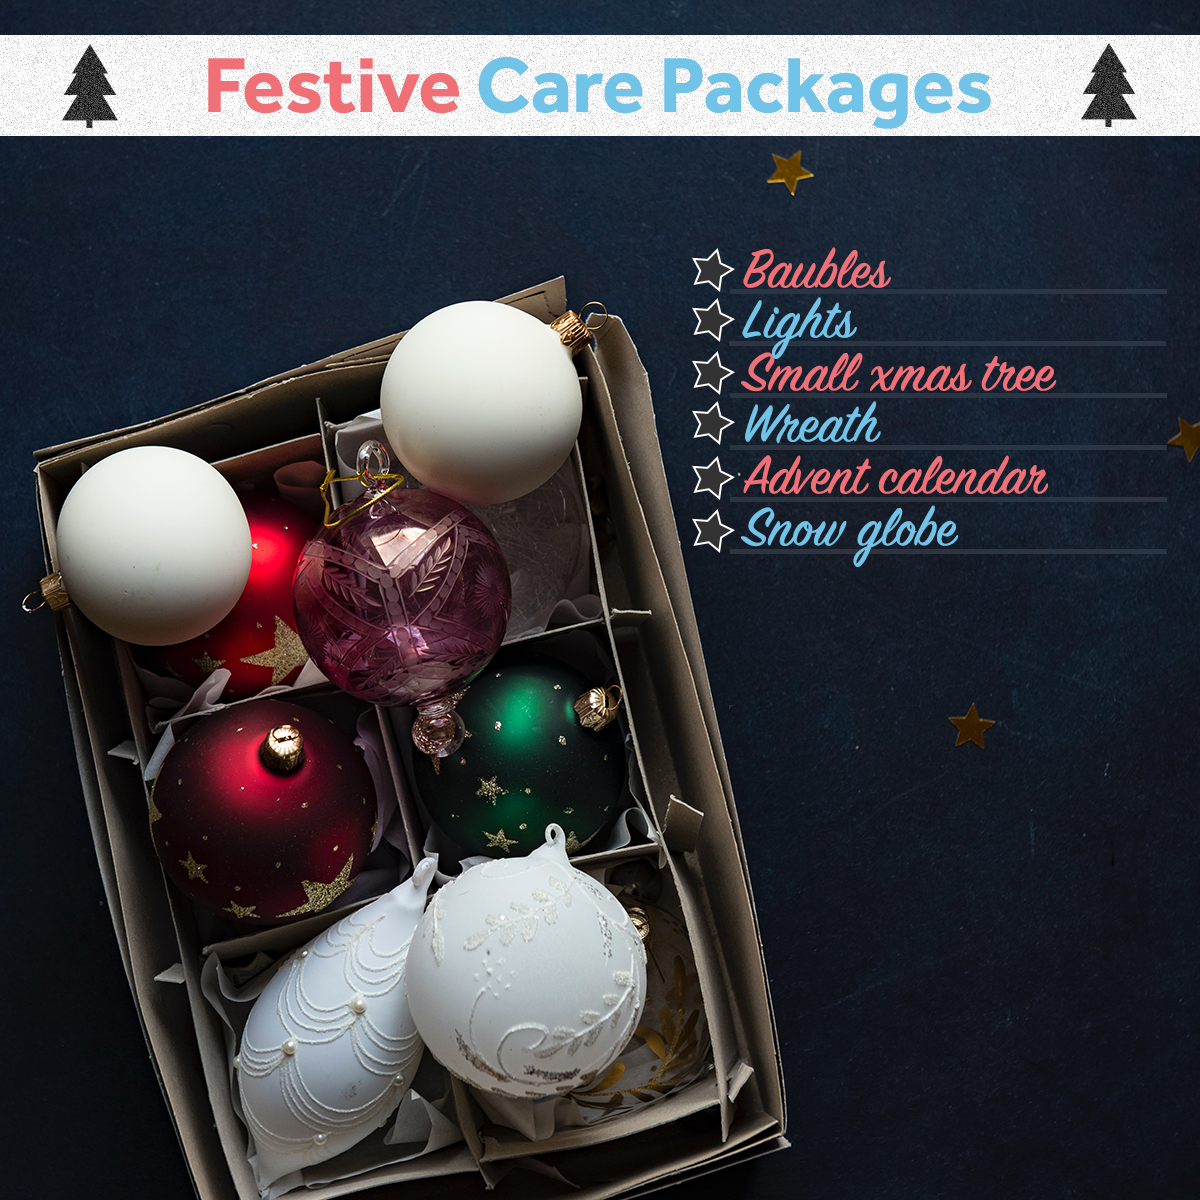 Christmas Care Packages - Decorations